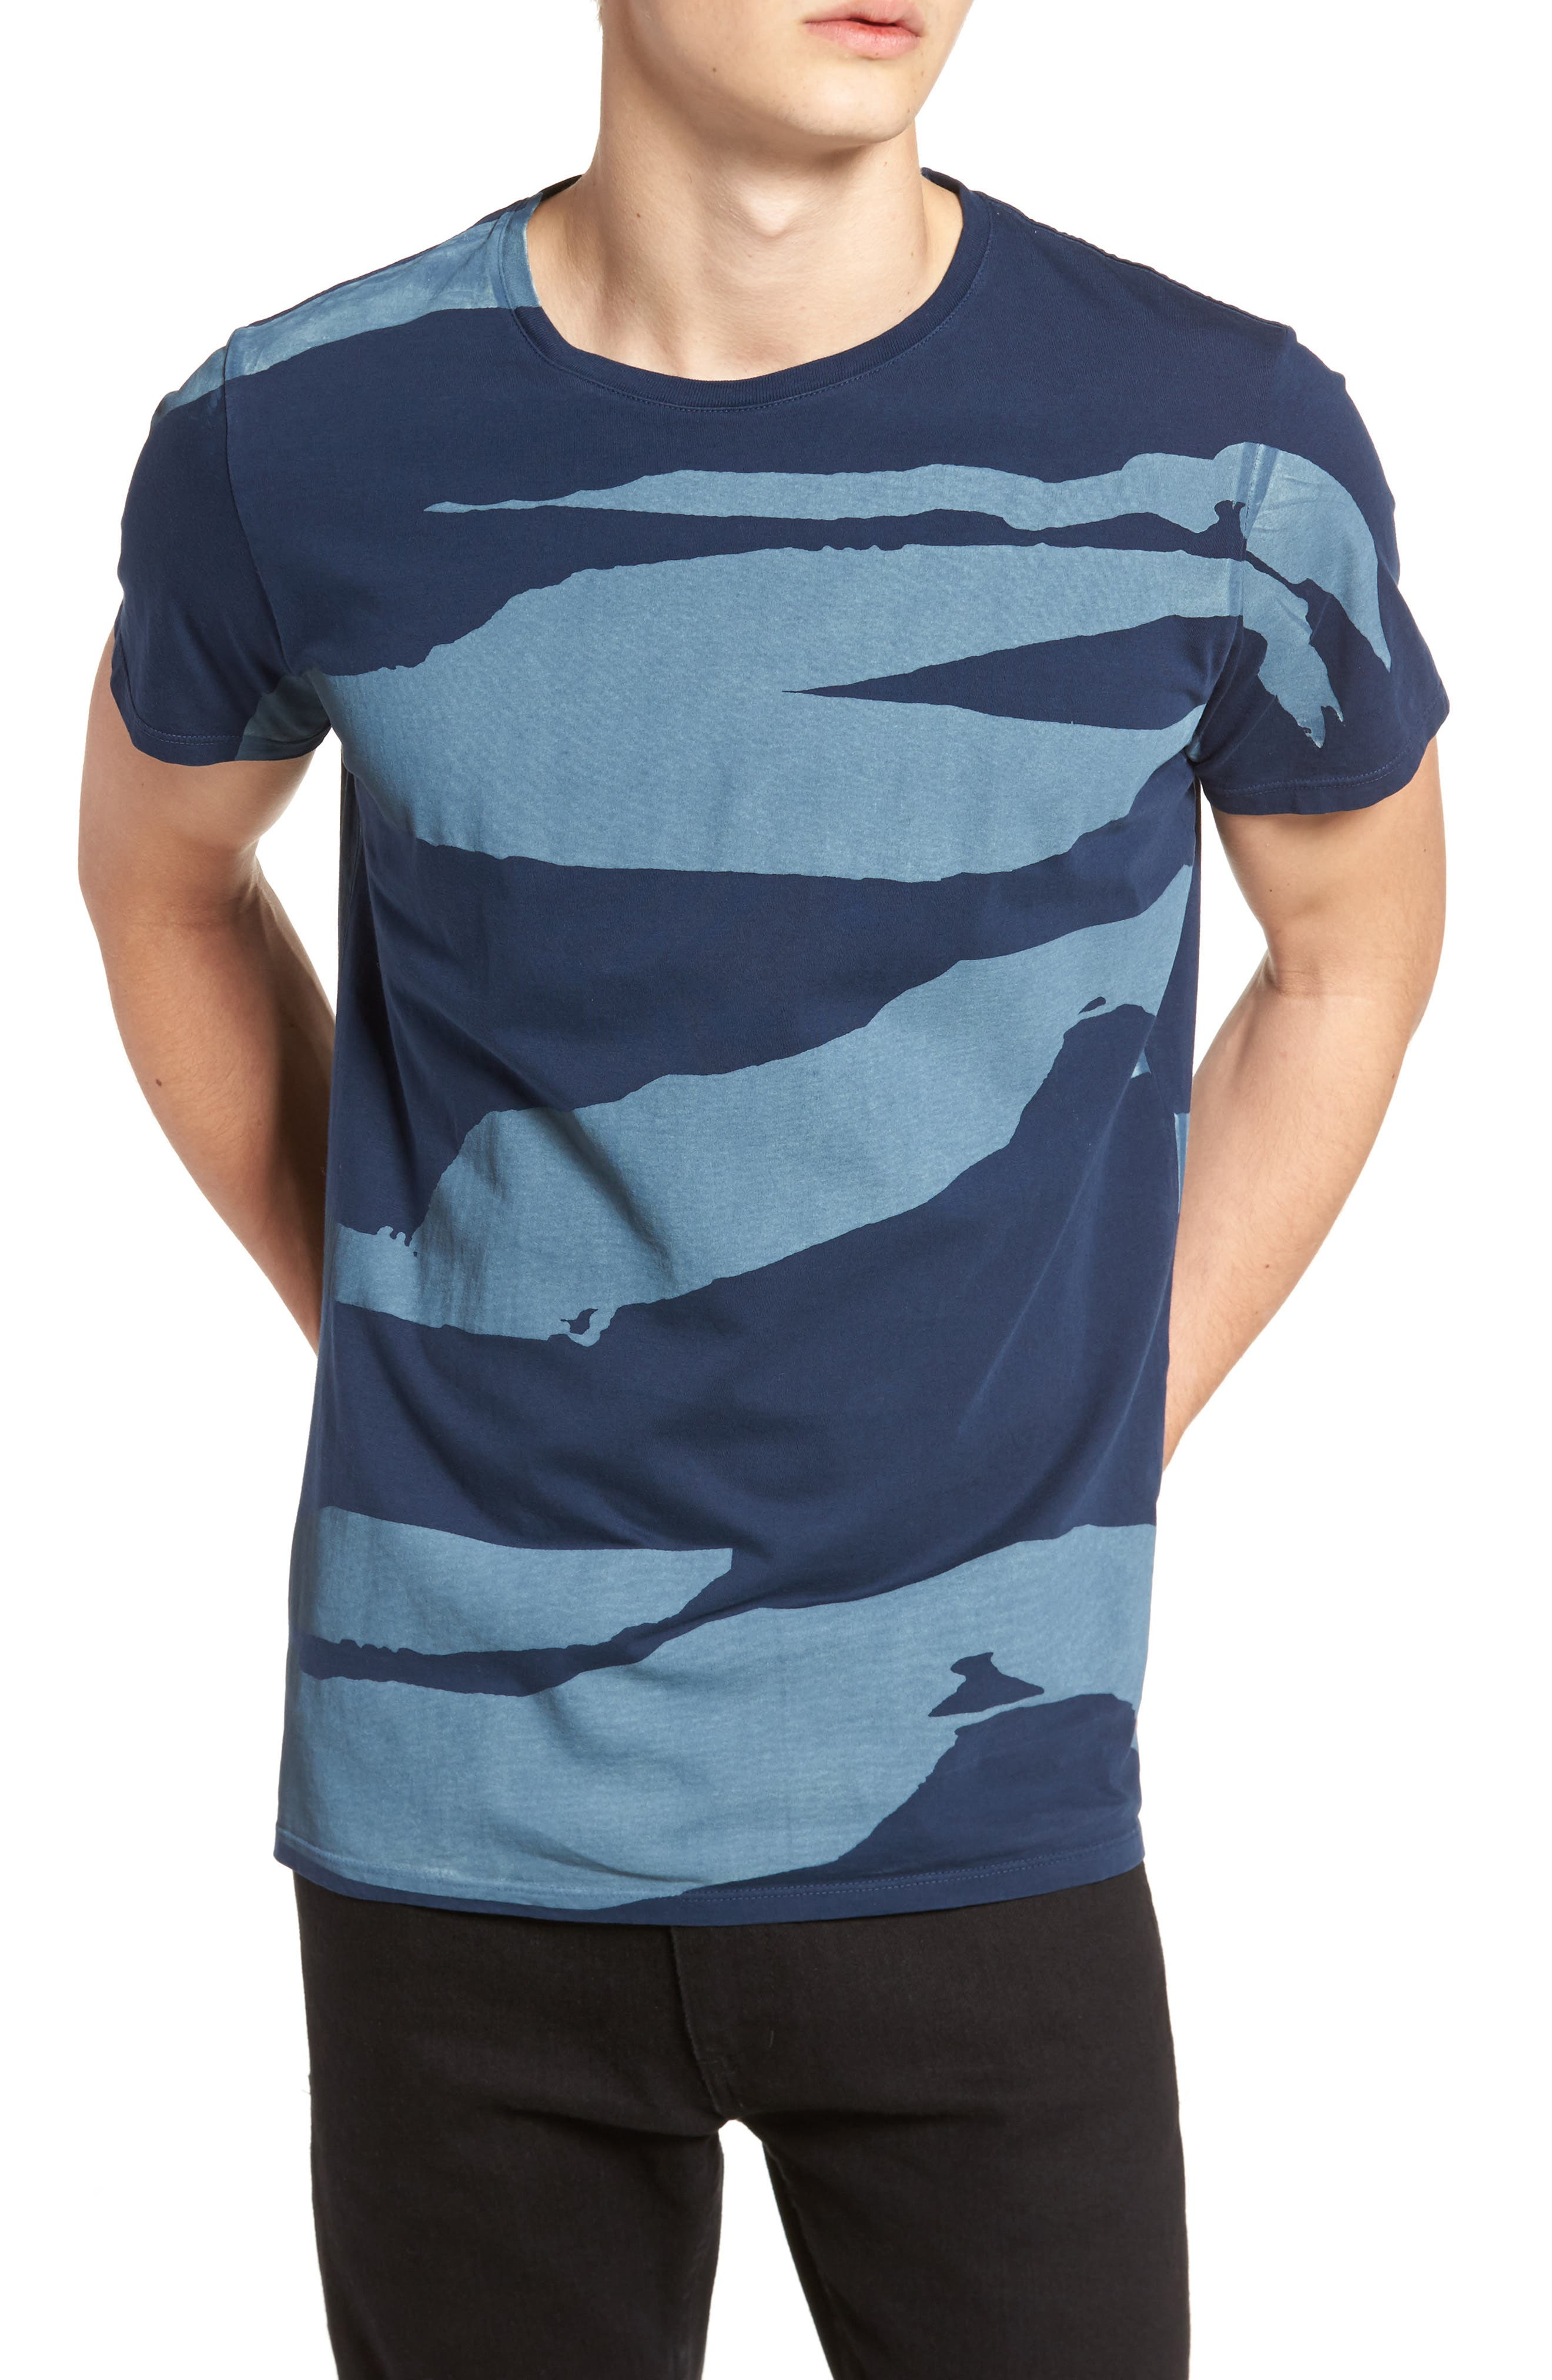 Torn Stripes T-Shirt,                             Main thumbnail 1, color,                             Navy